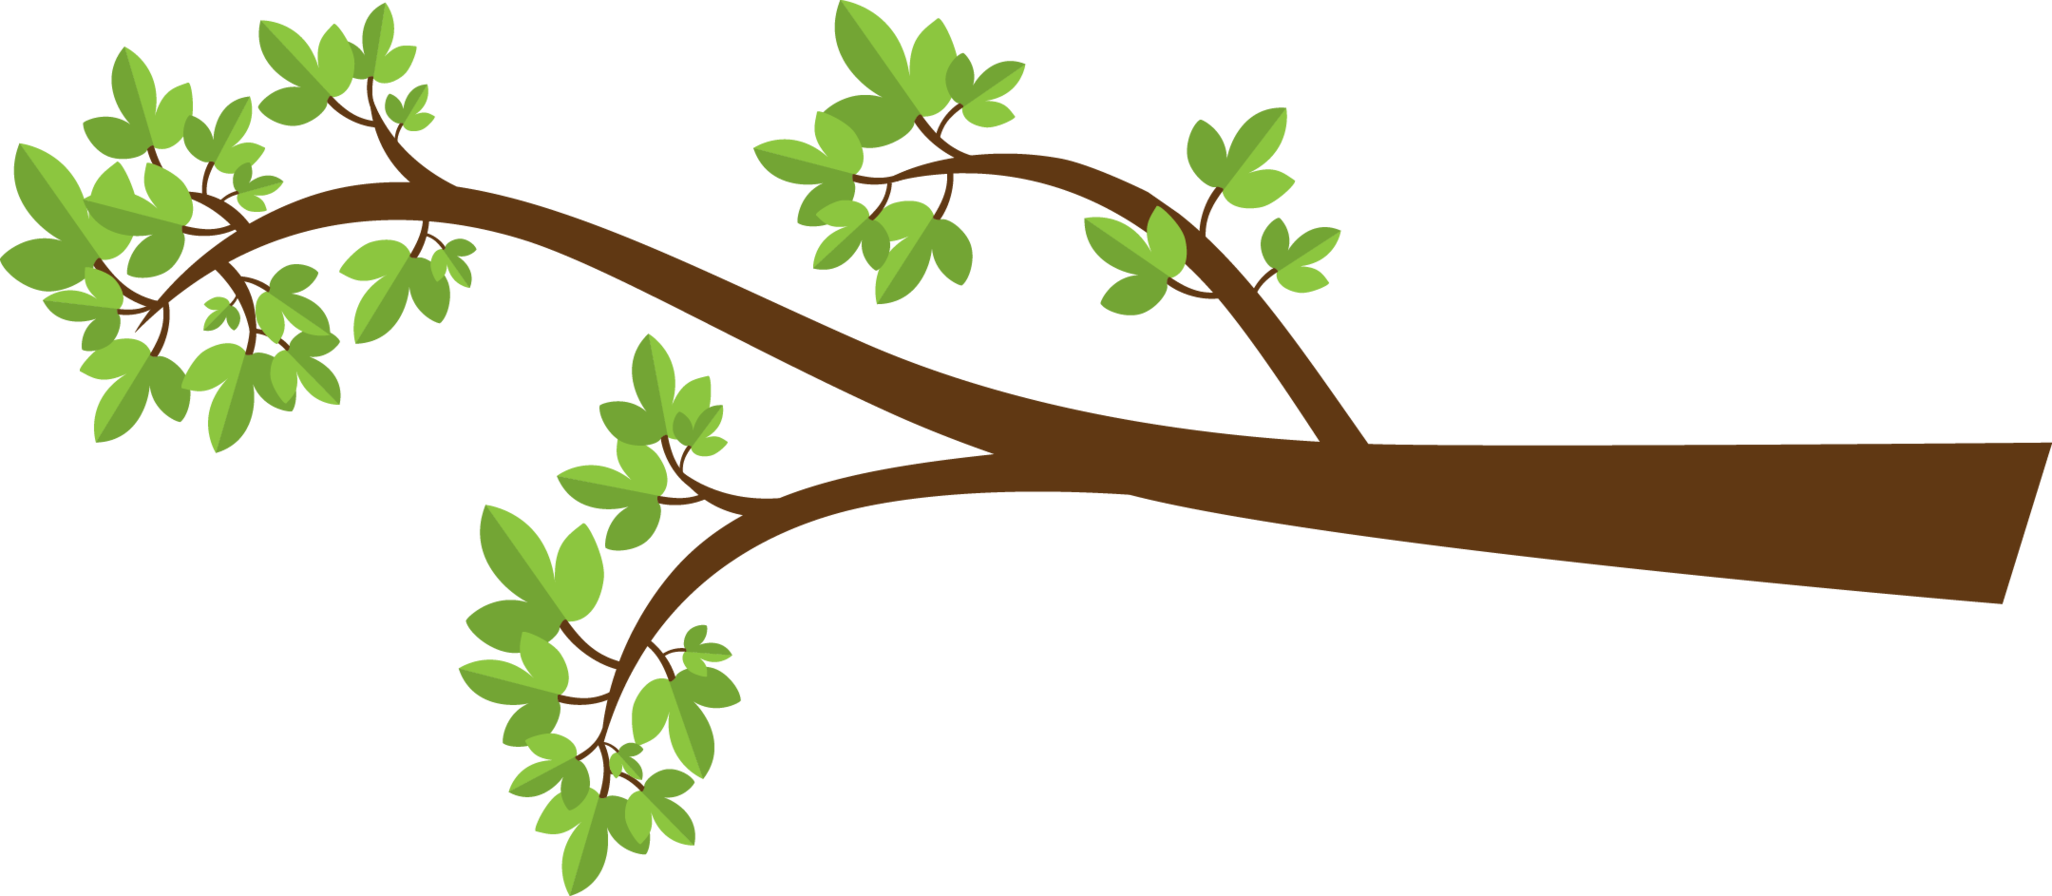 Branch png cartoon. Collection of tree